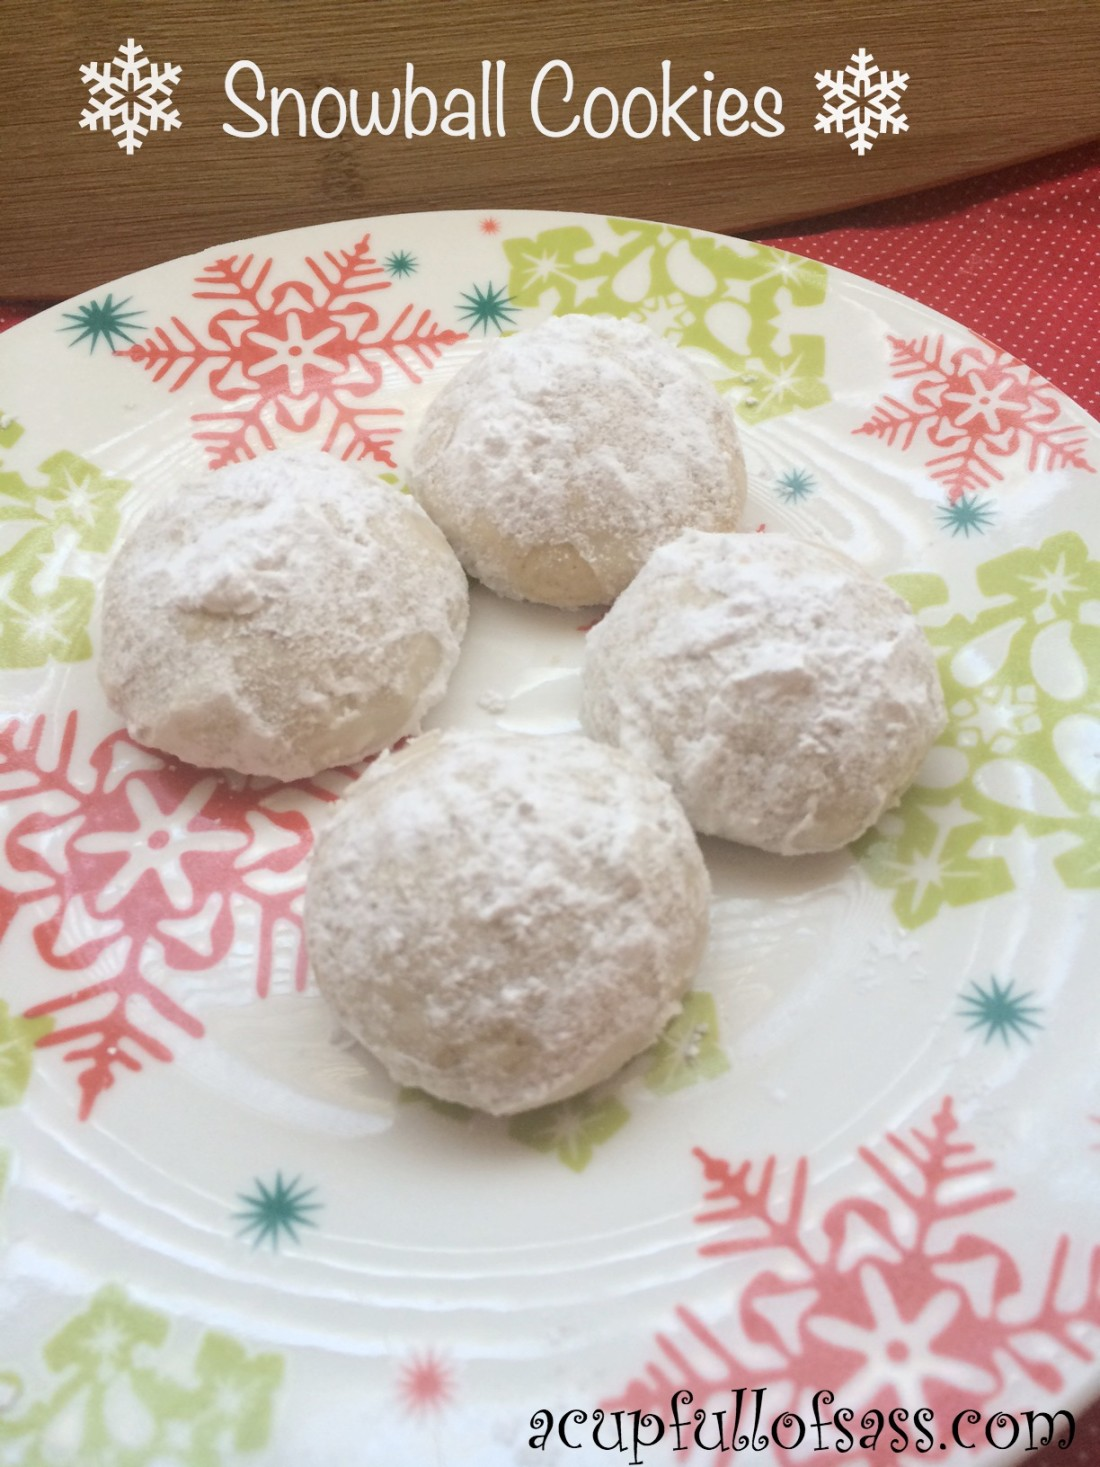 Snowball cookies, Russian Tea Cup, Mexican Wedding Cake Recipe. - A Cup Full of Sass